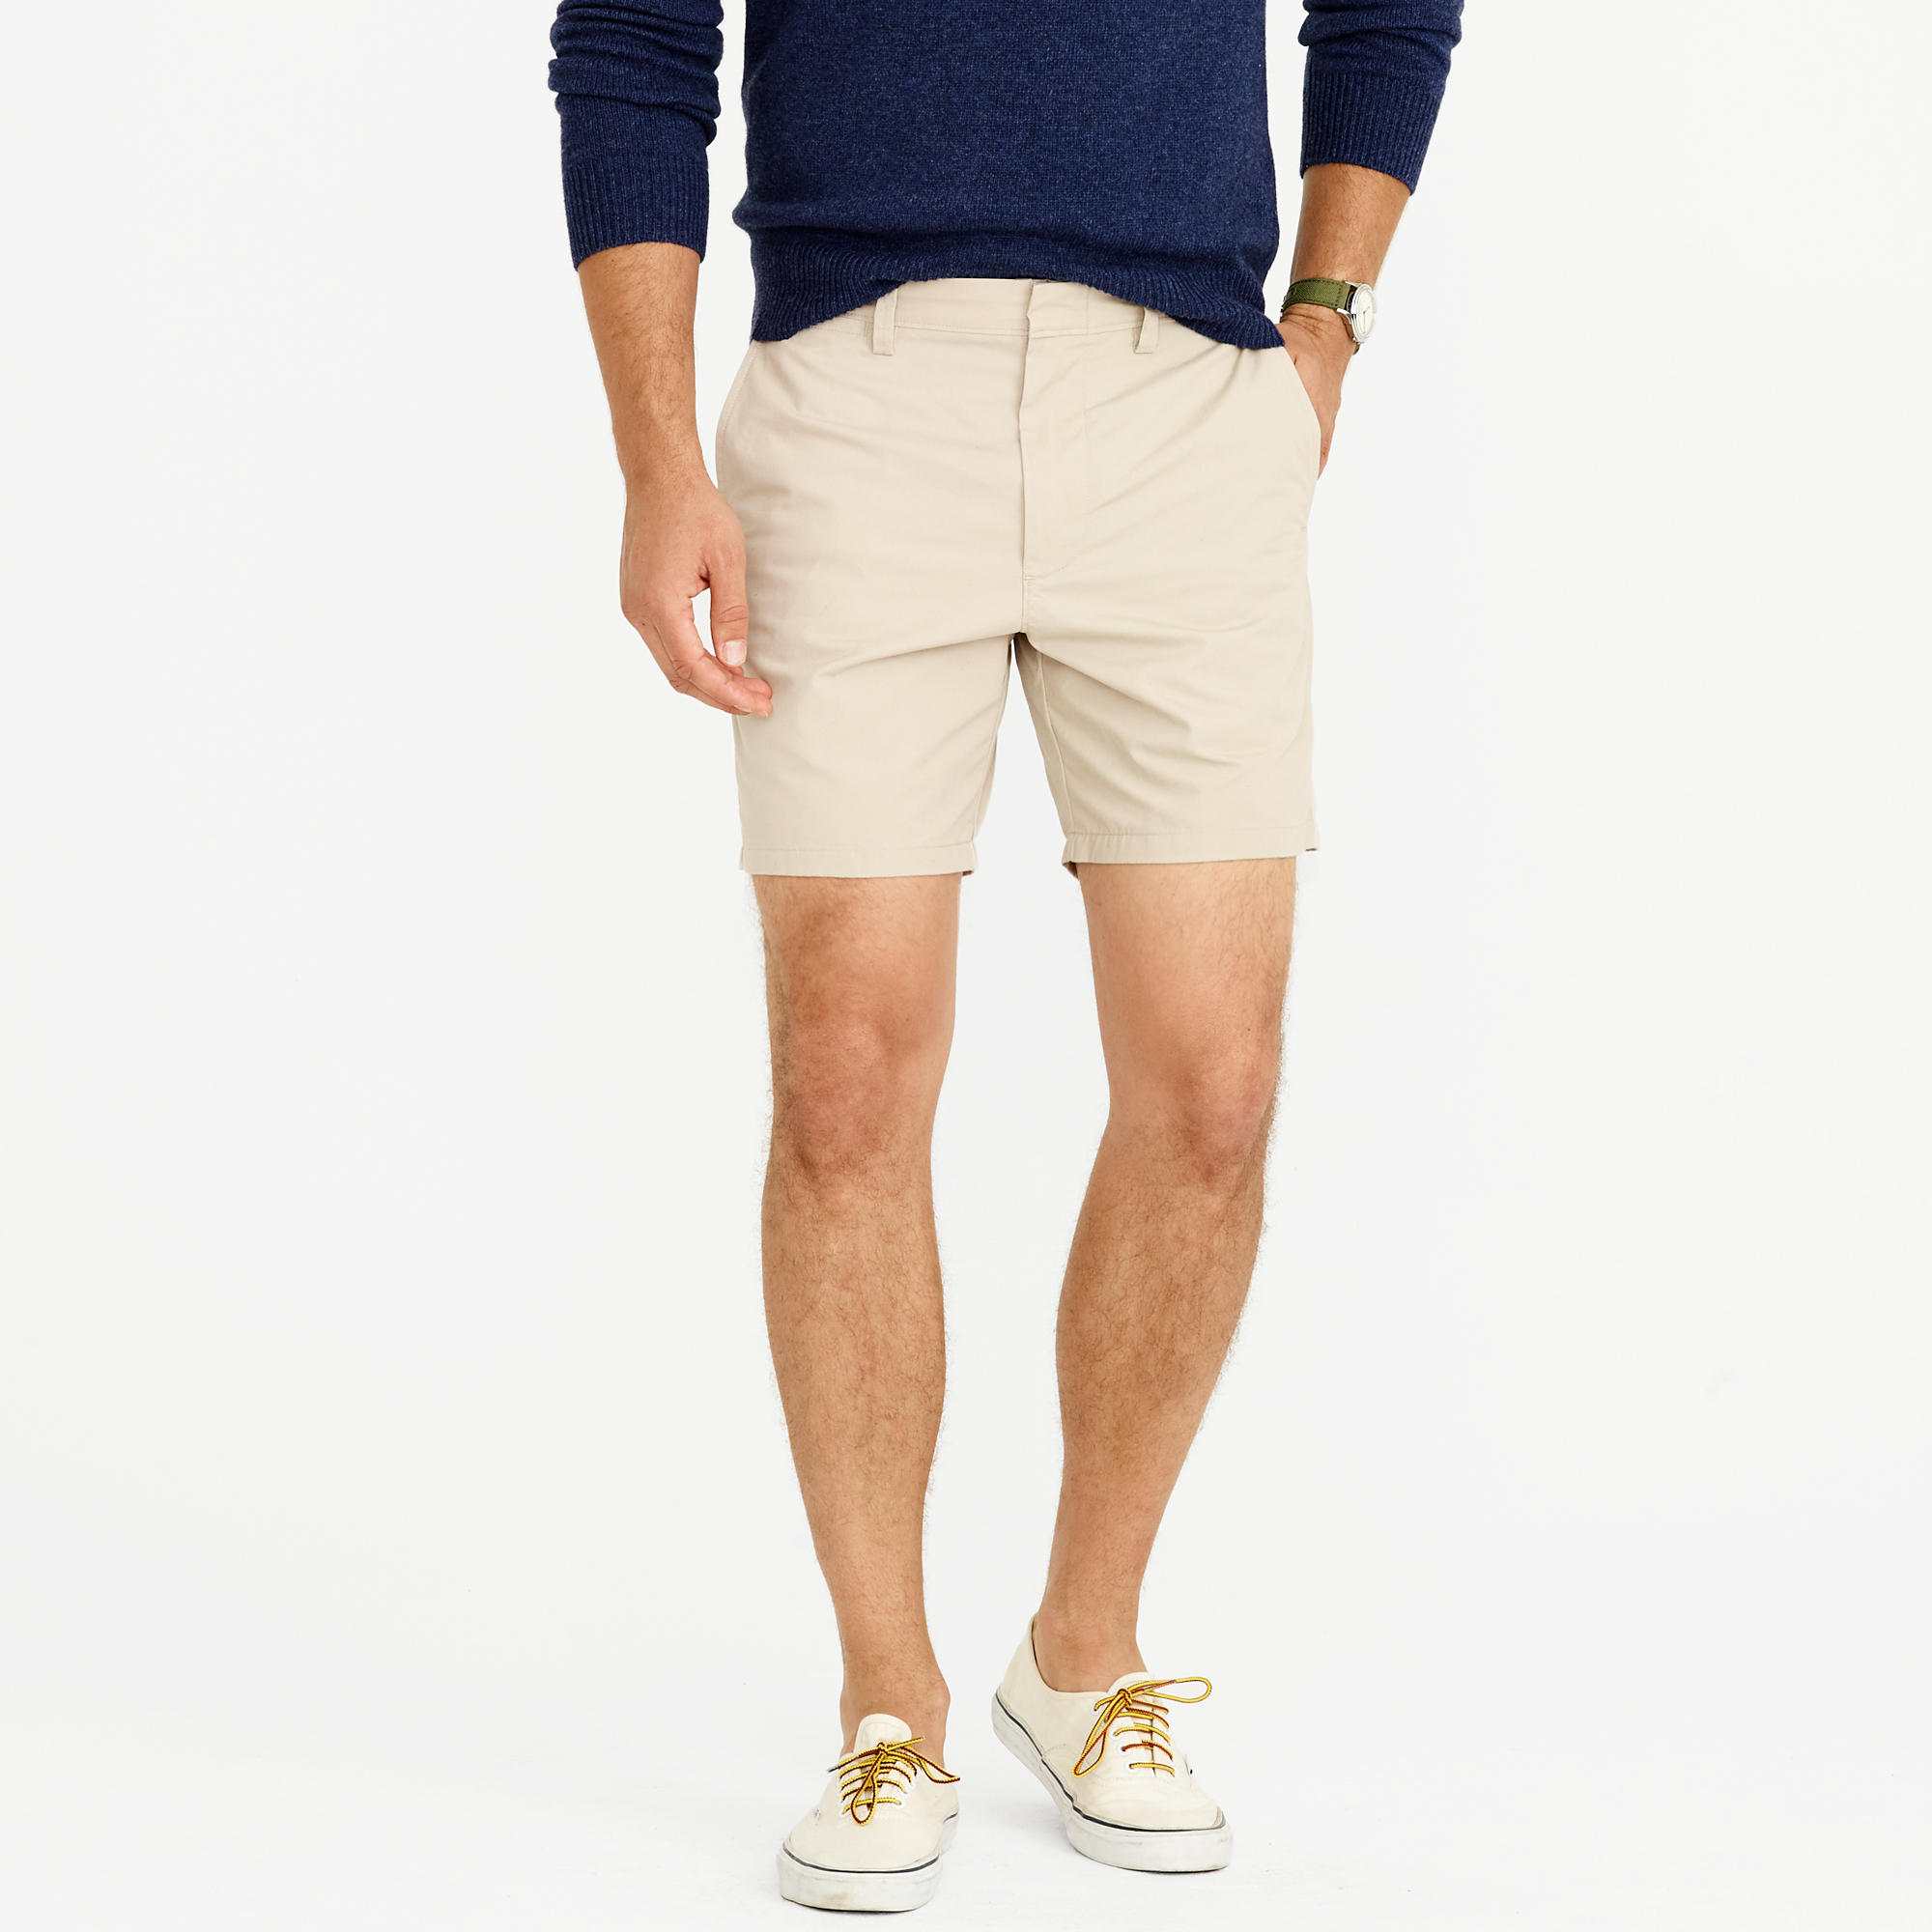 Mens Shorts & Khaki Shorts : Online Exclusives | J.Crew